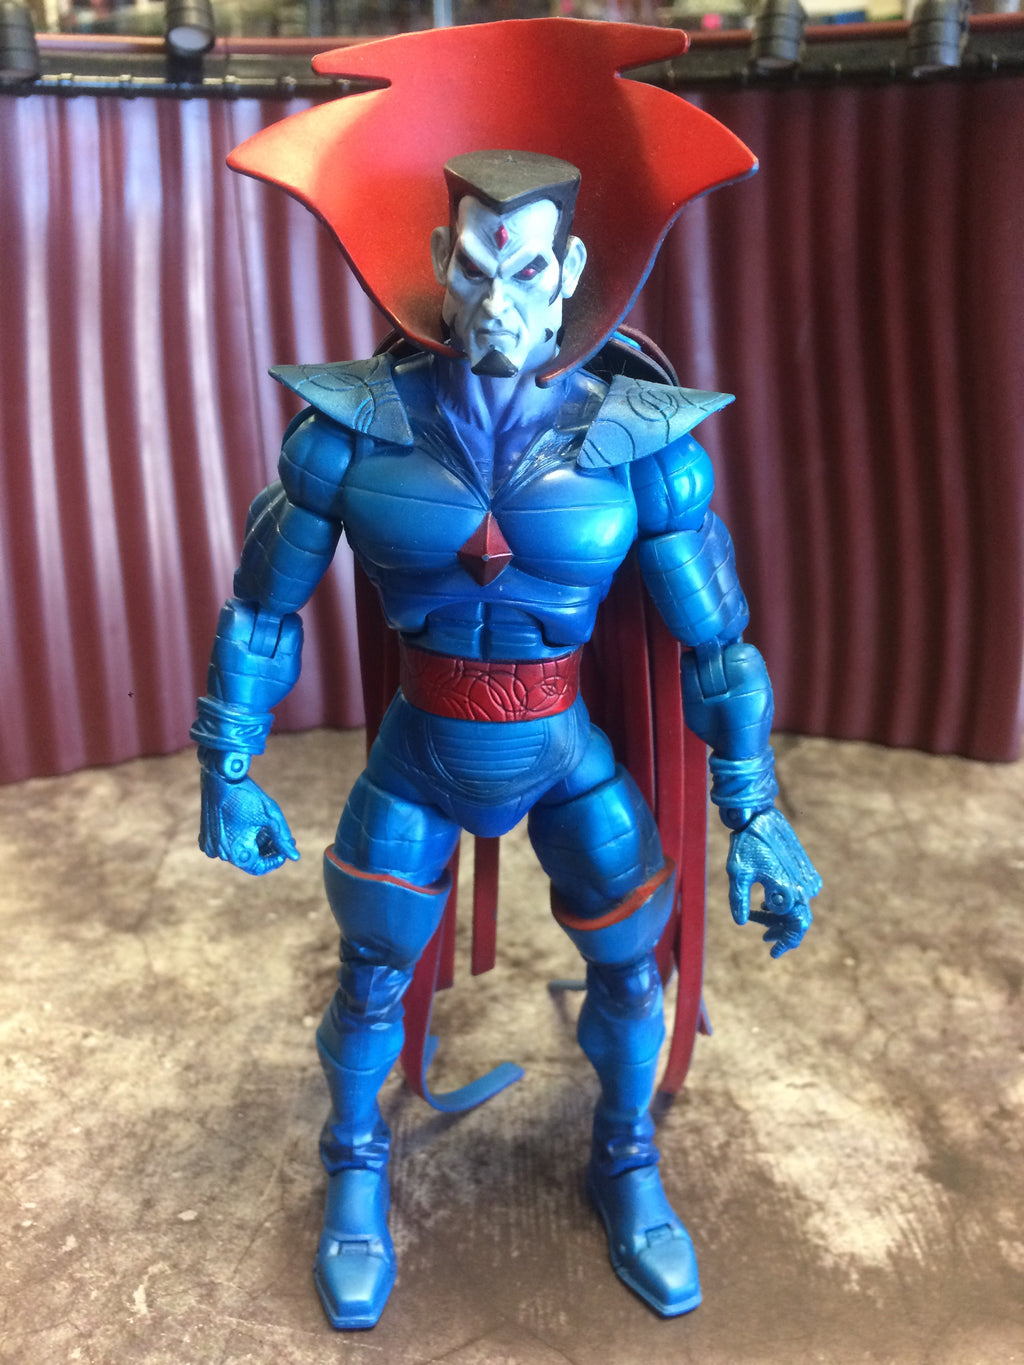 Toy Biz Marvel Legends Mr. Sinister (Sentinel Wave 2005)